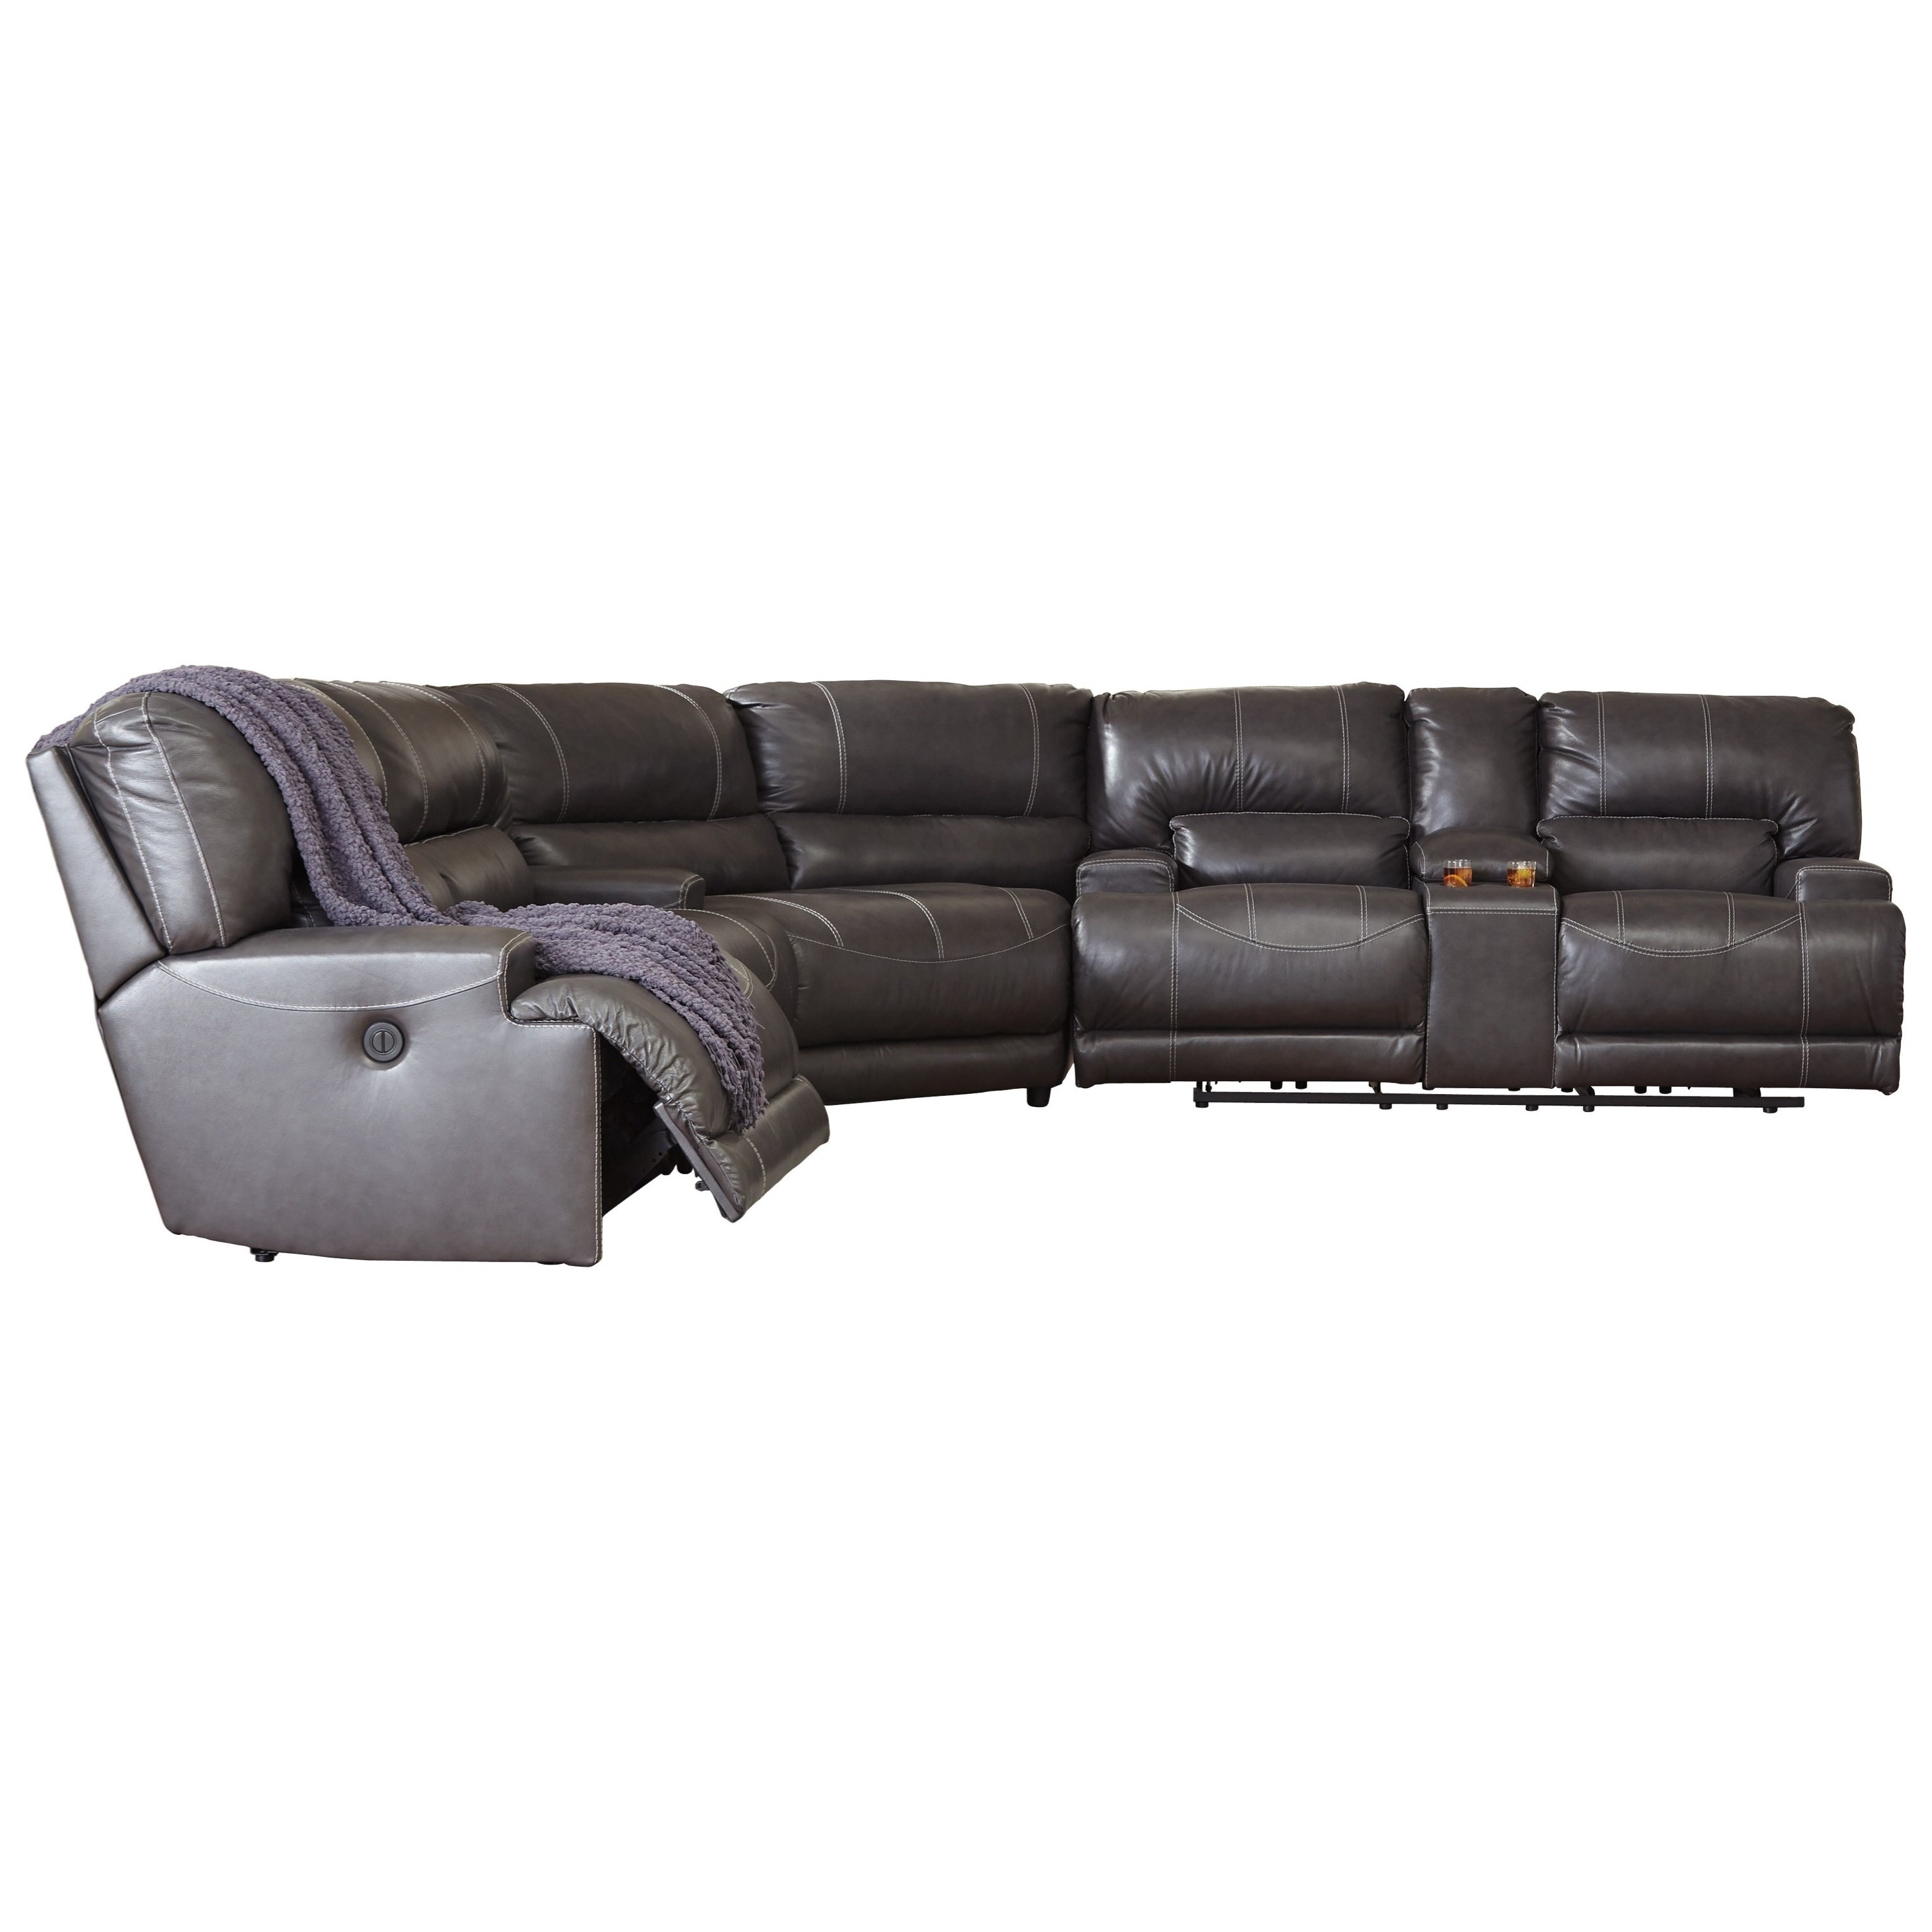 Jackson Ms Sectional Sofas Inside Fashionable Sectional Sofas (View 11 of 20)